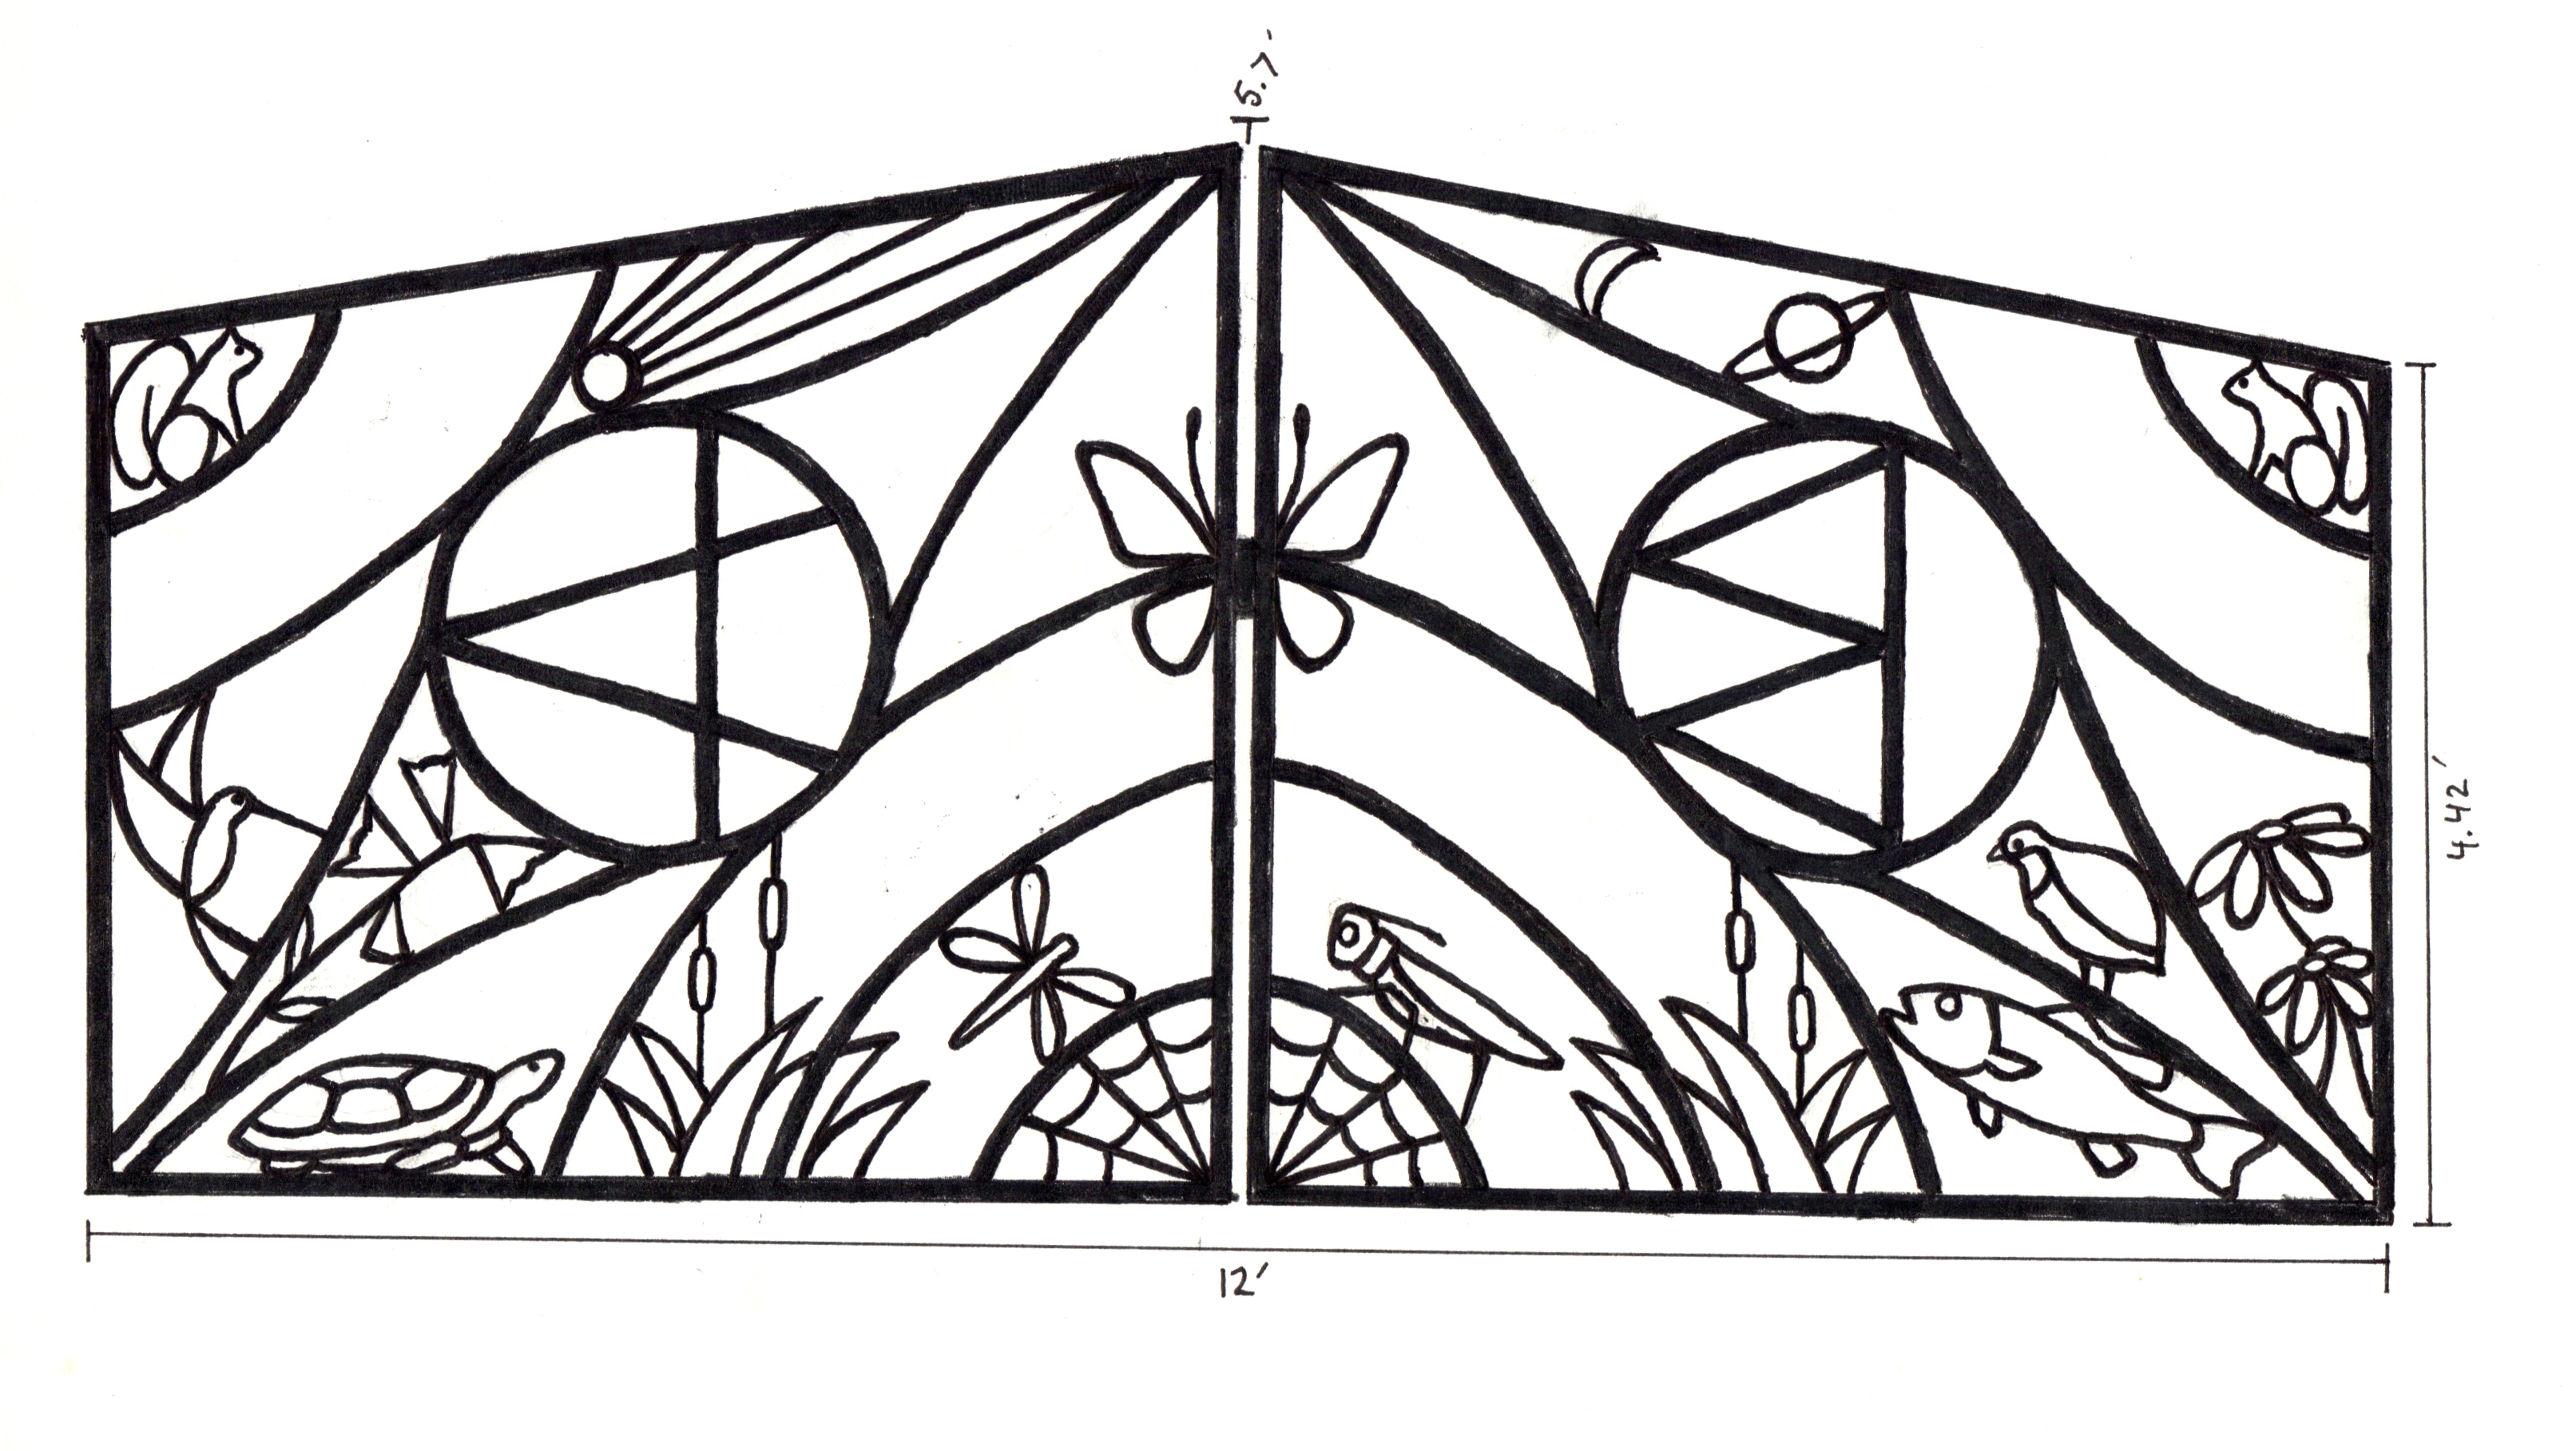 Garden Gate Drawing at GetDrawings.com | Free for personal use ... on french gardens, israel gardens, memorial stones for gardens, military gardens, modernism gardens, eighteenth century gardens, art gardens, glass gardens, japan gardens, london gardens, alaska gardens, early gardens, hong kong gardens, 17th century gardens, spain gardens, mexico gardens, 21st century gardens, texas gardens, italian gardens, modern gardens,